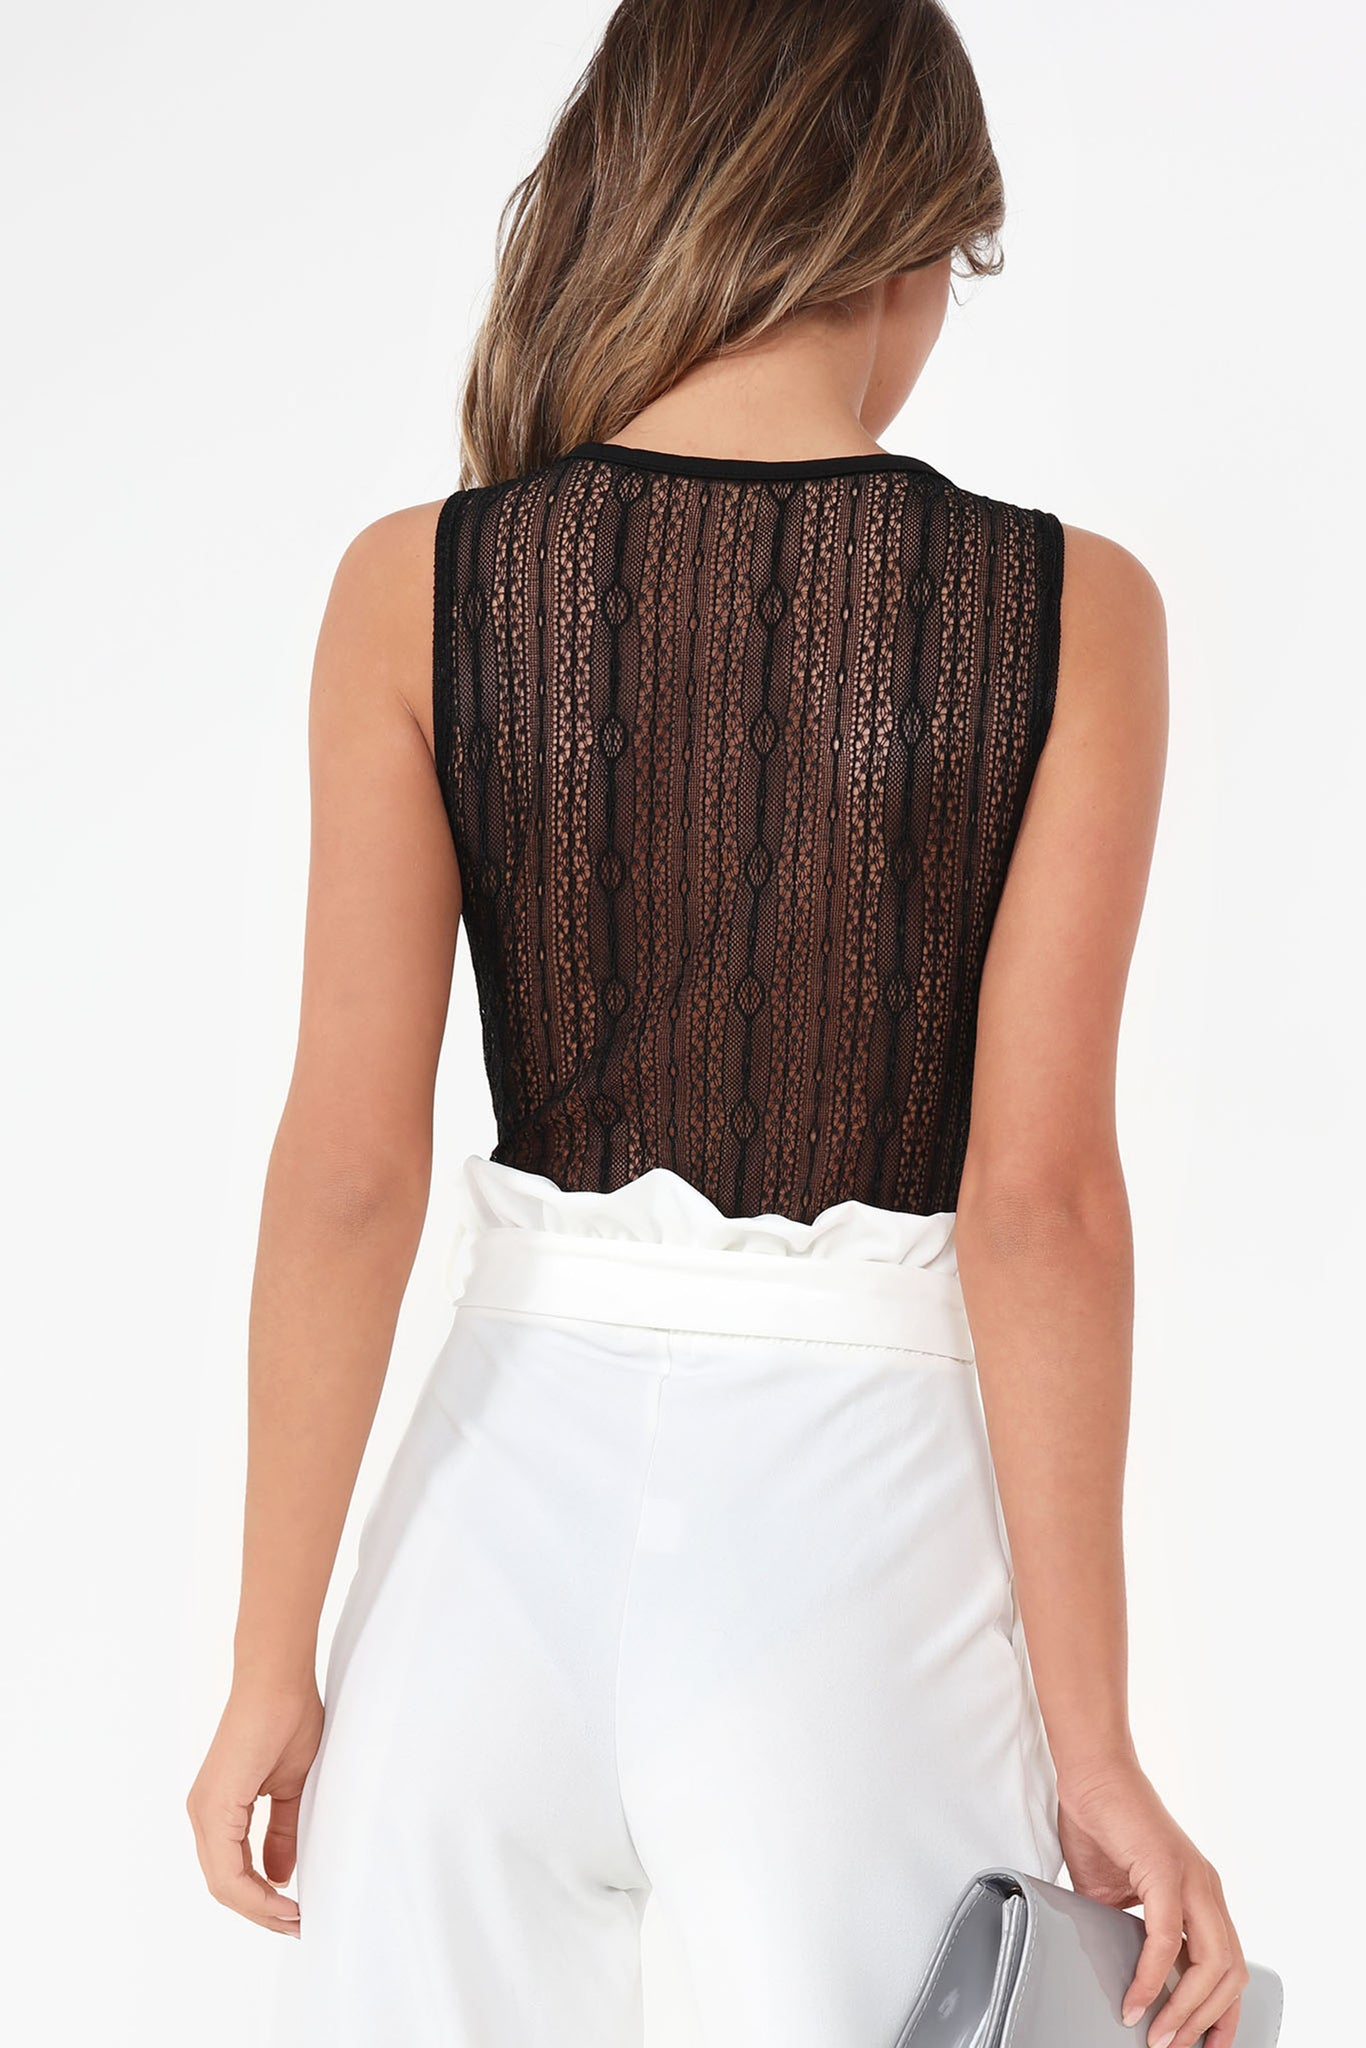 d3cf6813ad79 Fable Black Lace Panel Sleeveless Bodysuit. €15.00. Was €23.99. Previous